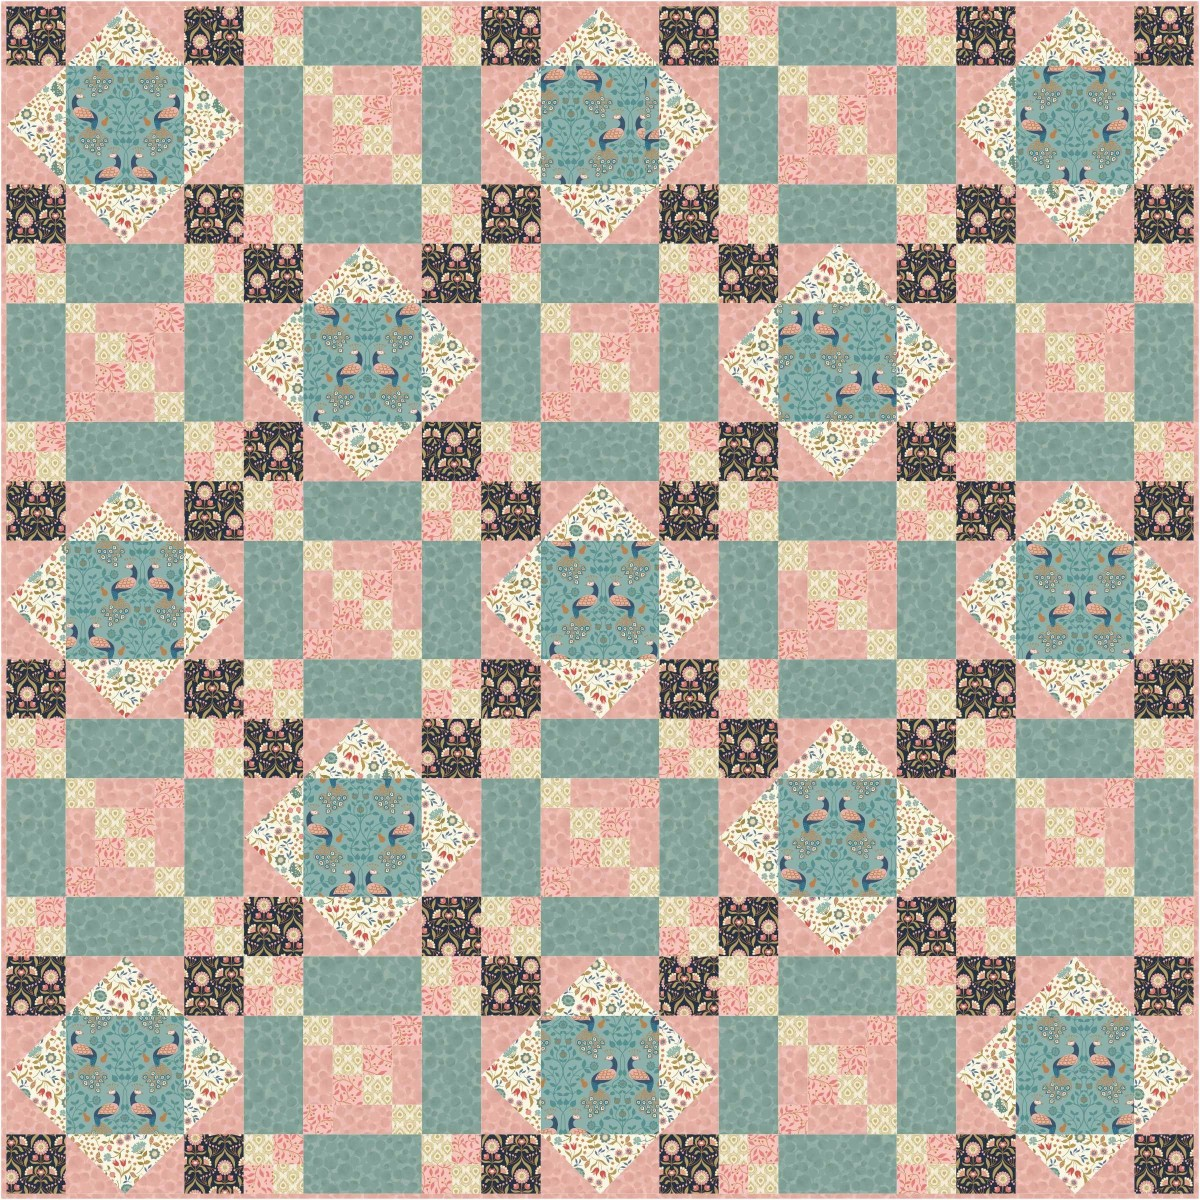 Chieveley Quilt Design 3